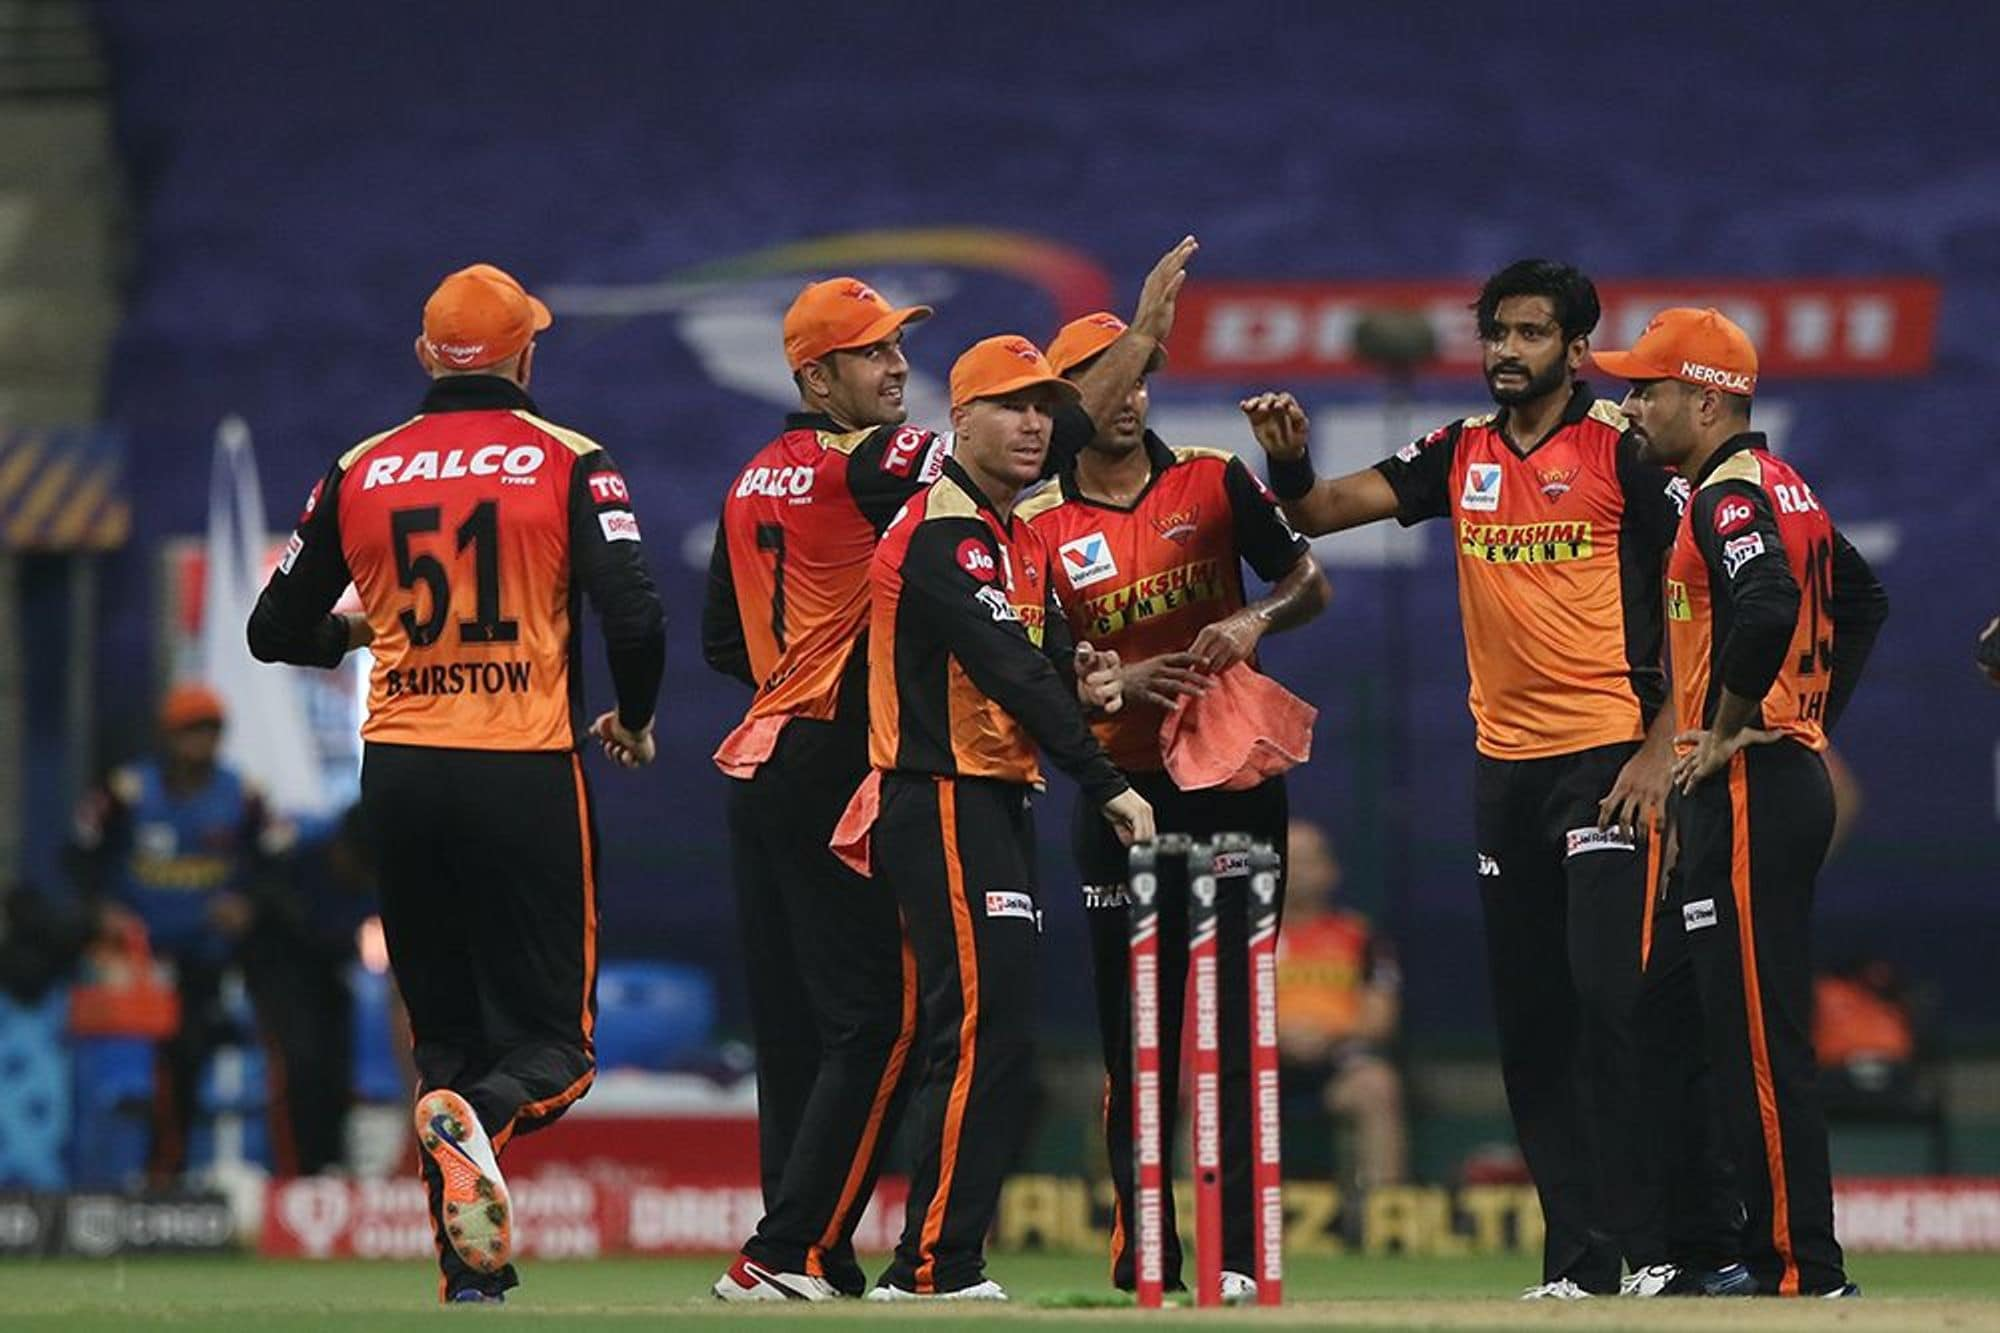 IPL 2020: Sunrisers Hyderabad vs Delhi Capitals: Highest Run Scorers and Leading Wicket Takers From Both Sides